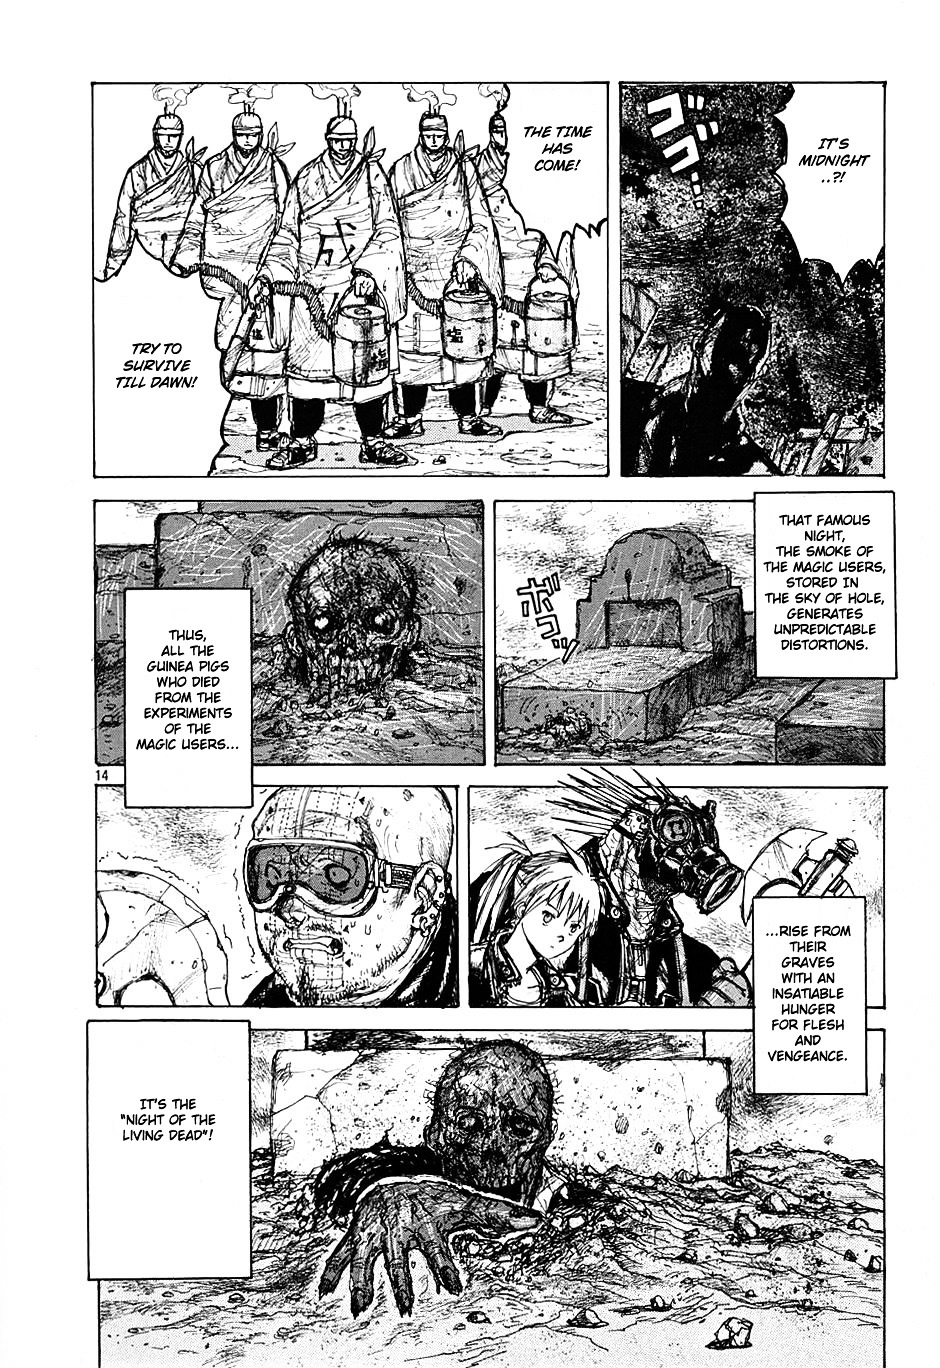 A page from the manga explains the Night of the Living Dead as zombies begin to rise from their graves.